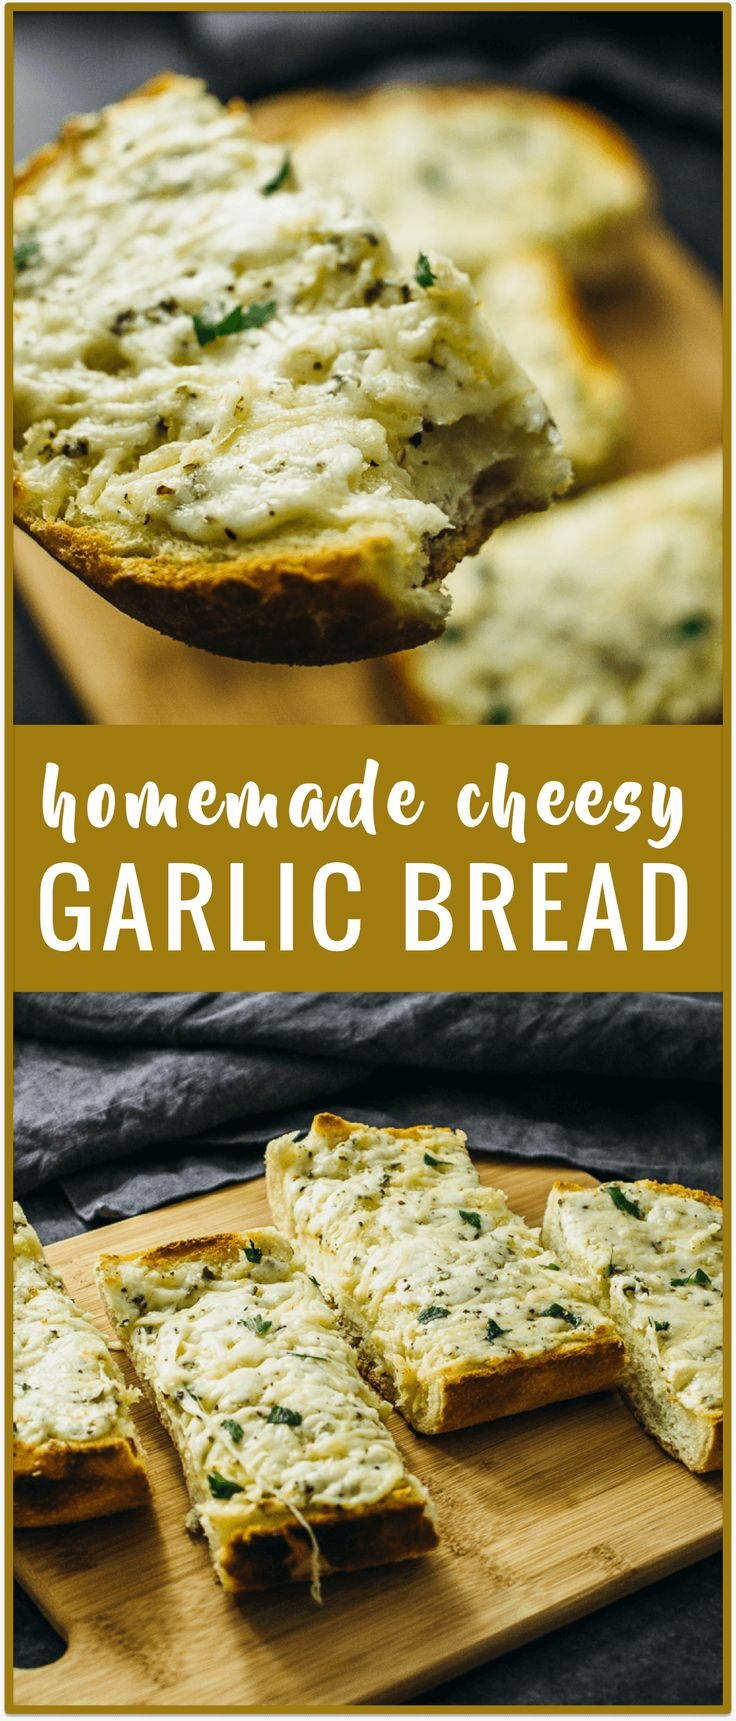 Cheesy oven-baked garlic bread - Make your own garlic bread at home with this simple recipe. All you need is a loaf of Italian bread, garlic cloves, butter, and lots of cheese. via @savory_tooth